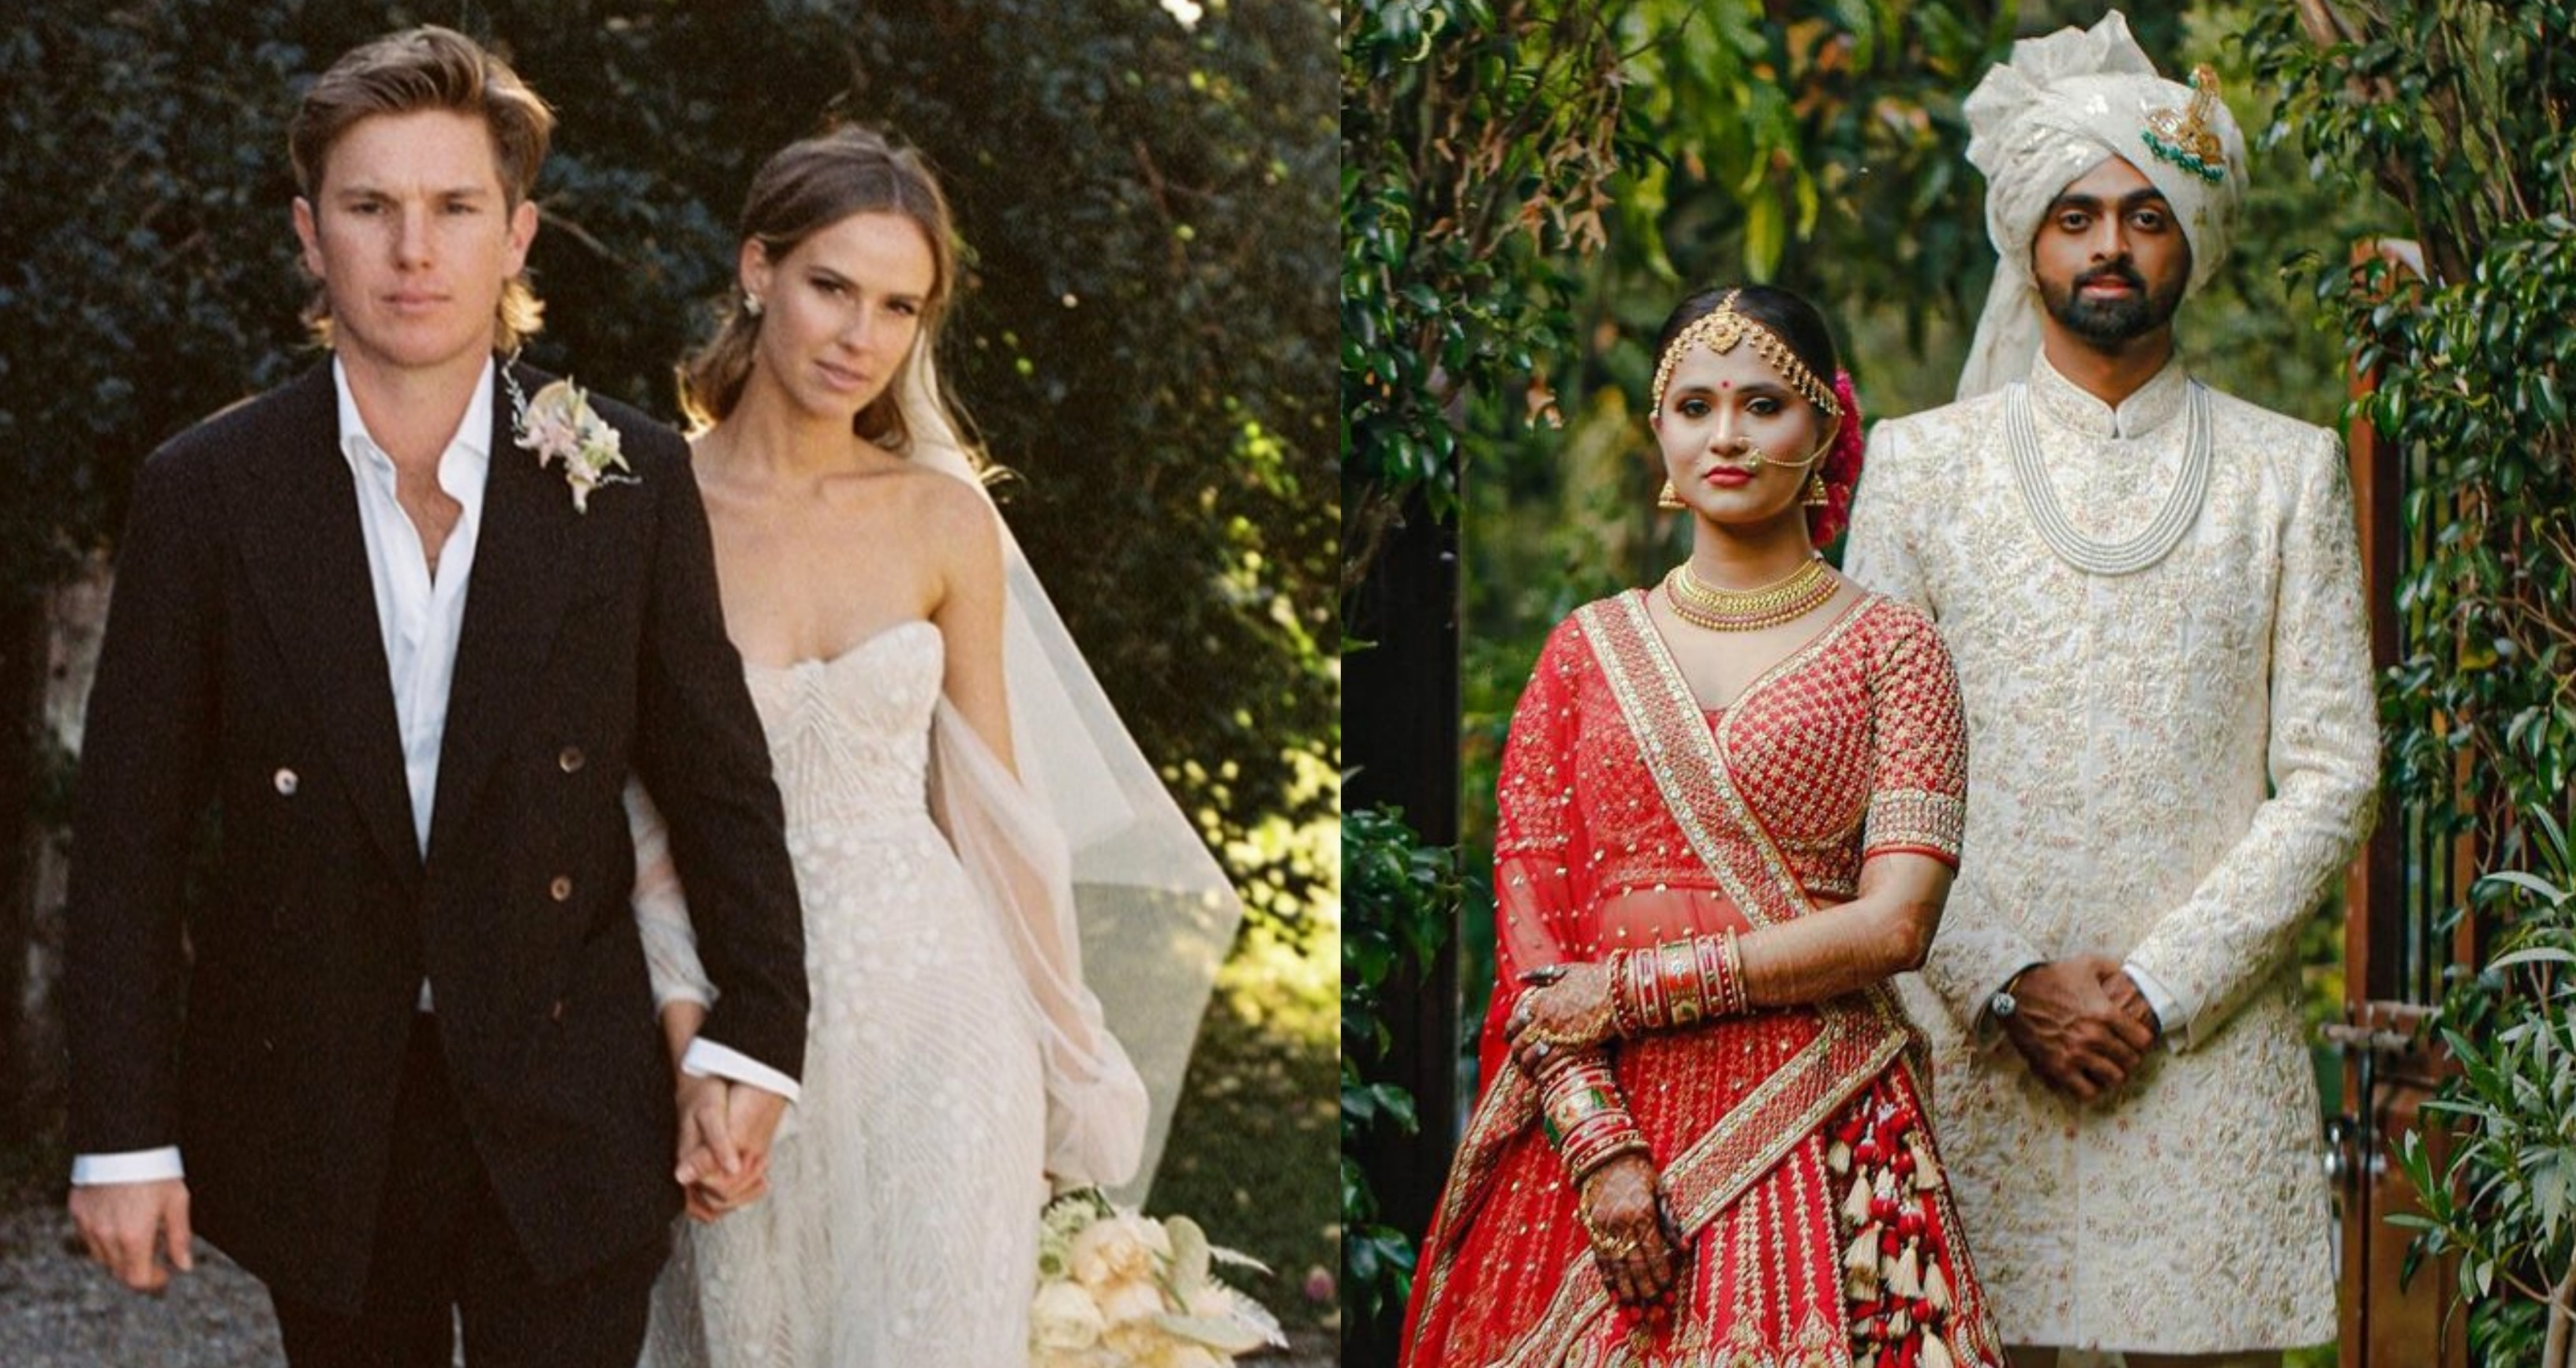 Cricket stars who tied the knot